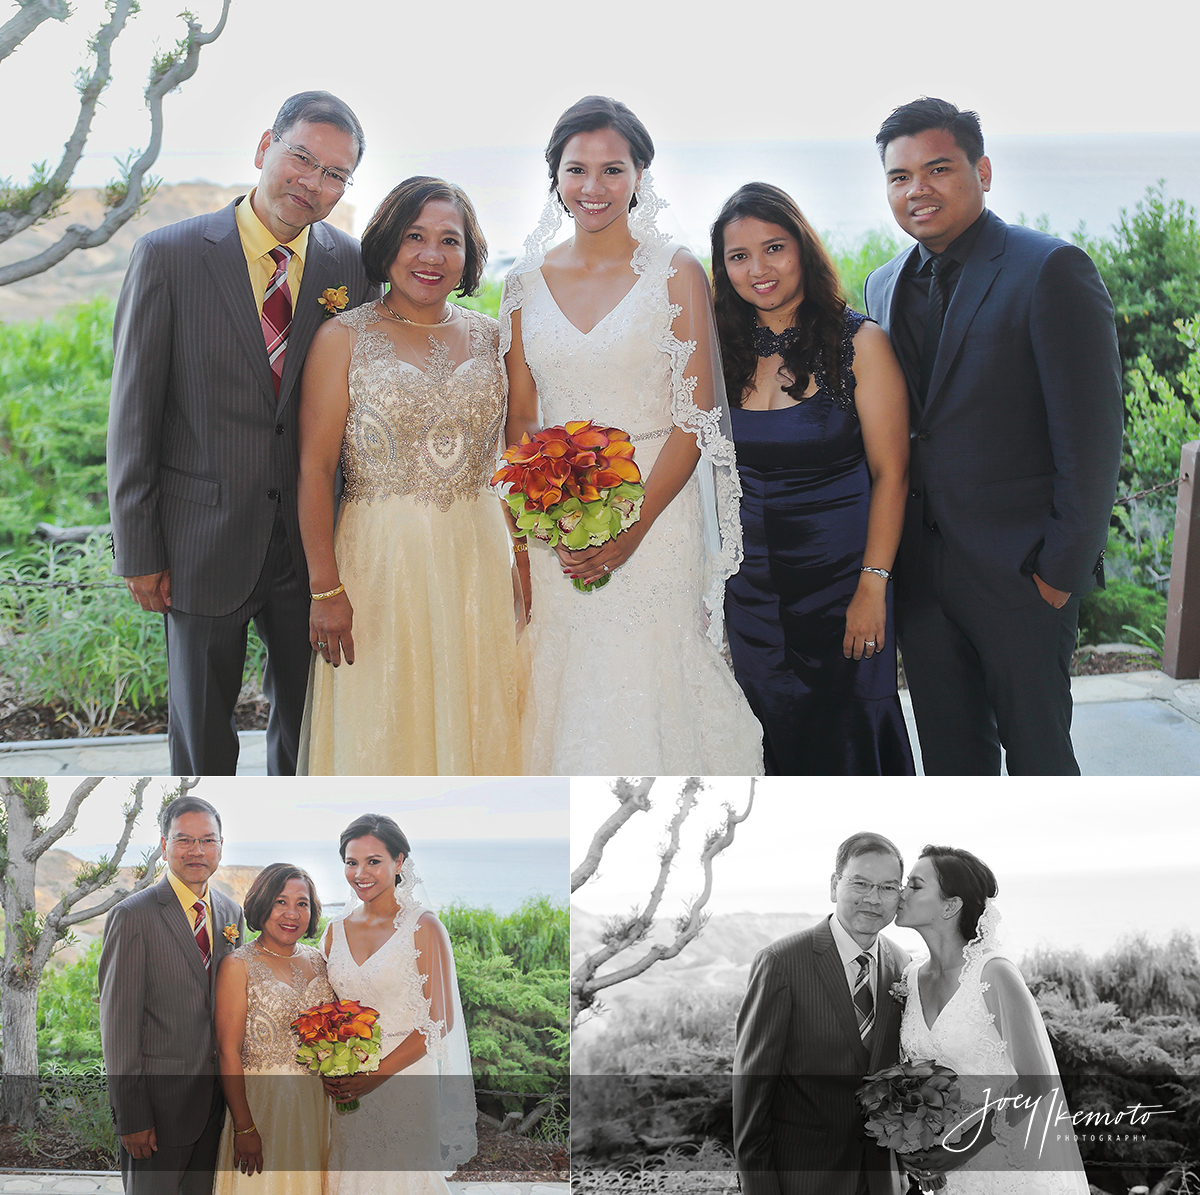 Wayfarers-Chapel-and-Portofino-Redondo-Beach-Wedding_0030_Blog-Collage-1472681439854